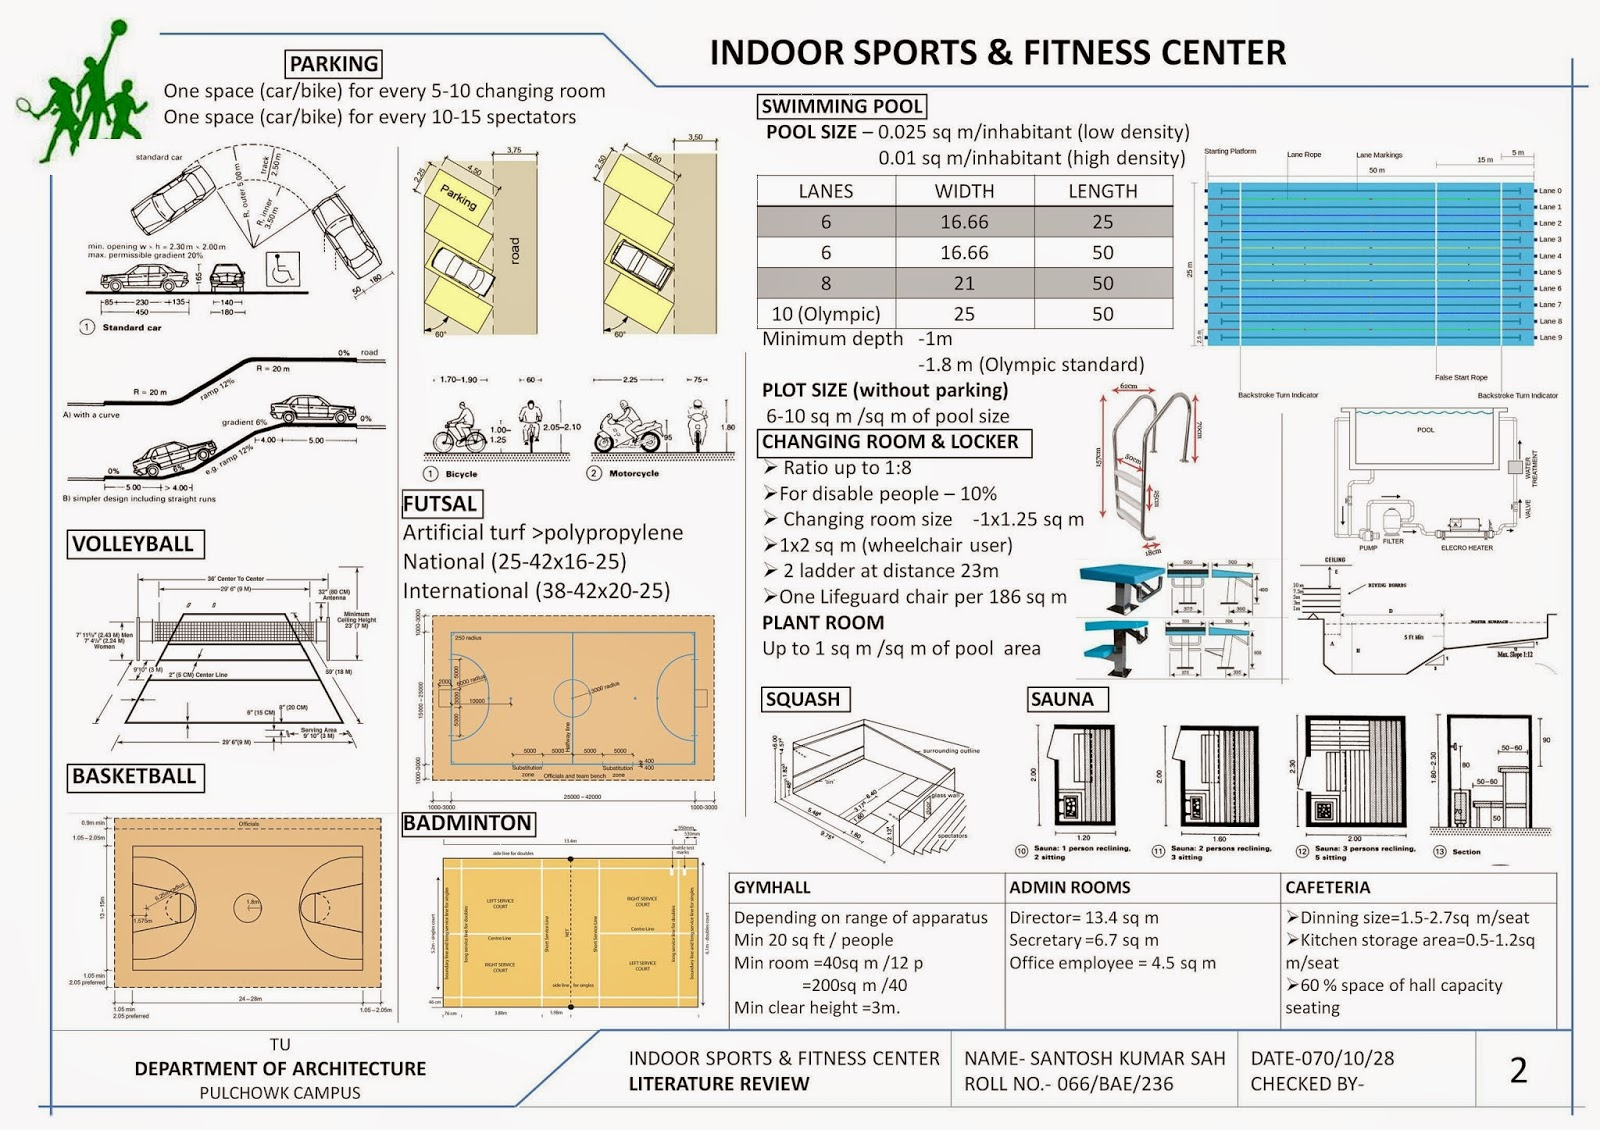 Architecture literature review case study of sports complex for Architectural design review